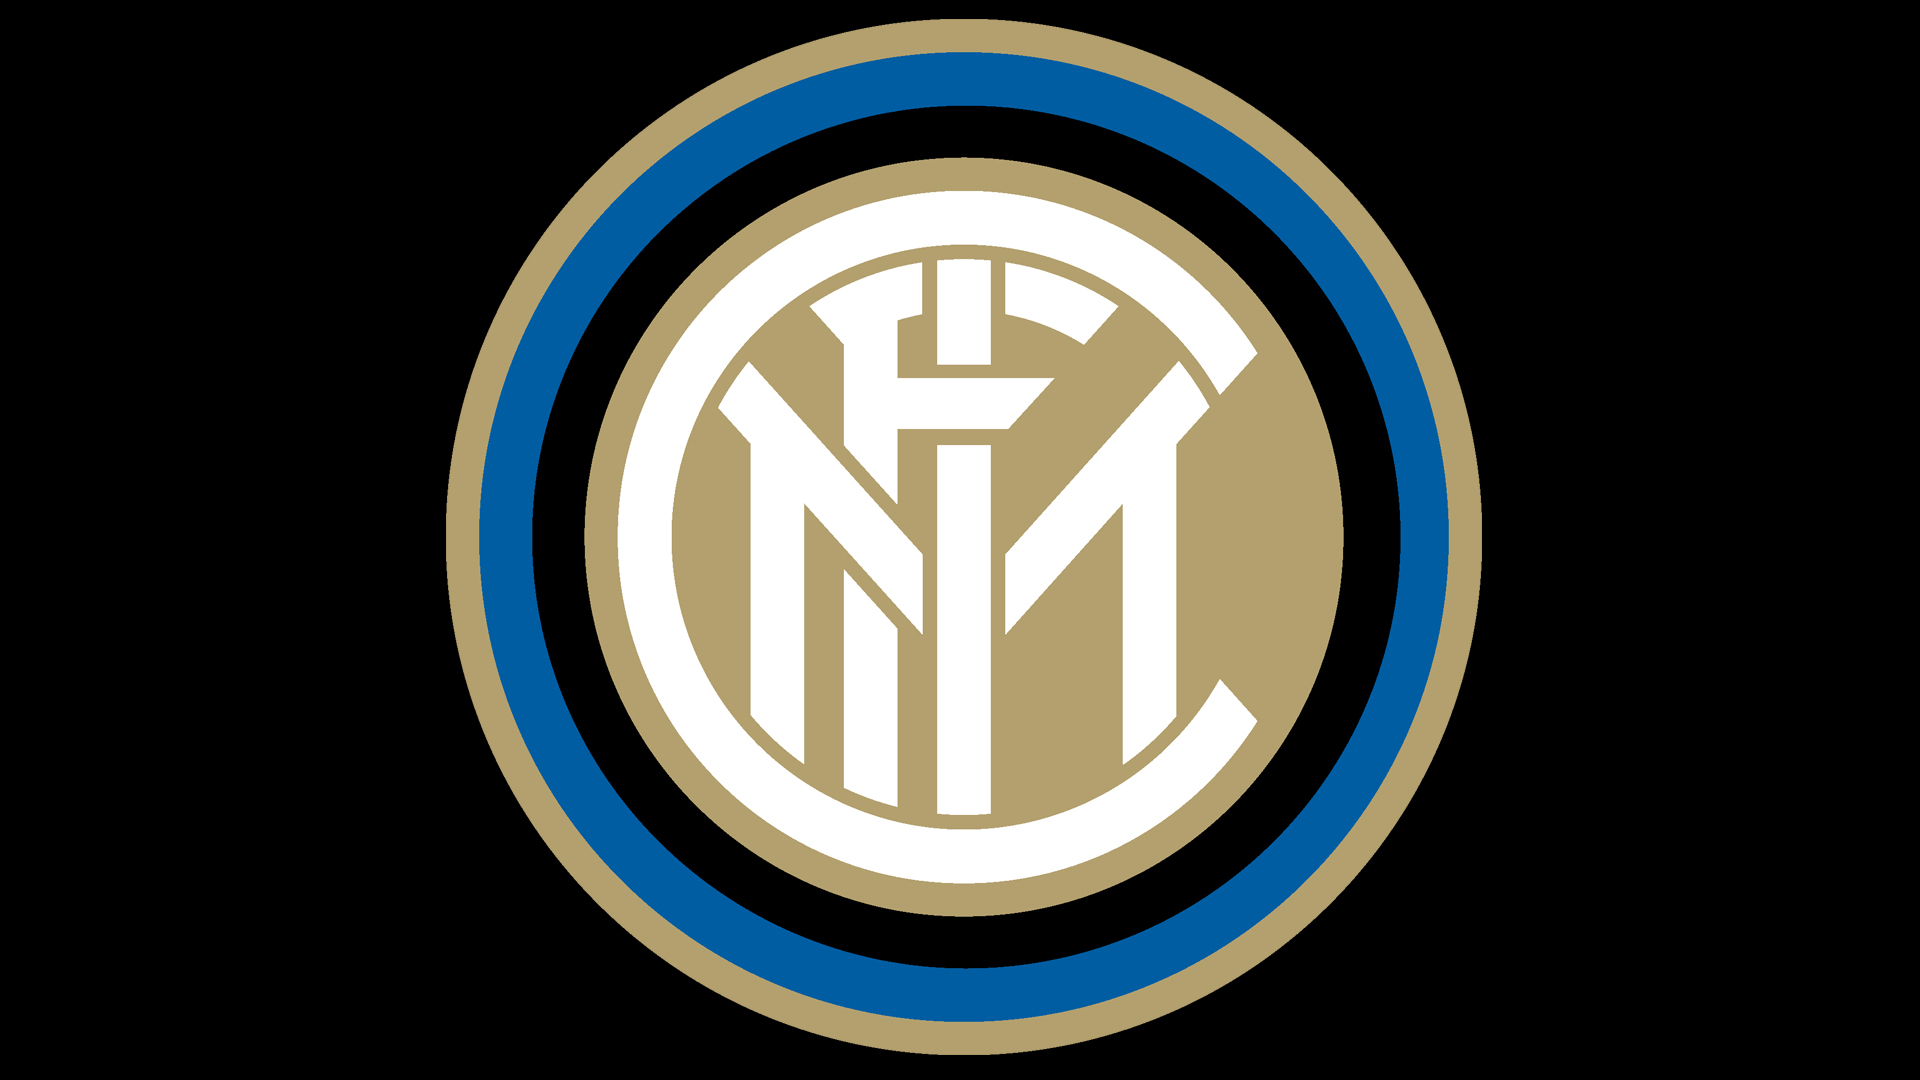 Meaning Internazionale logo and symbol.